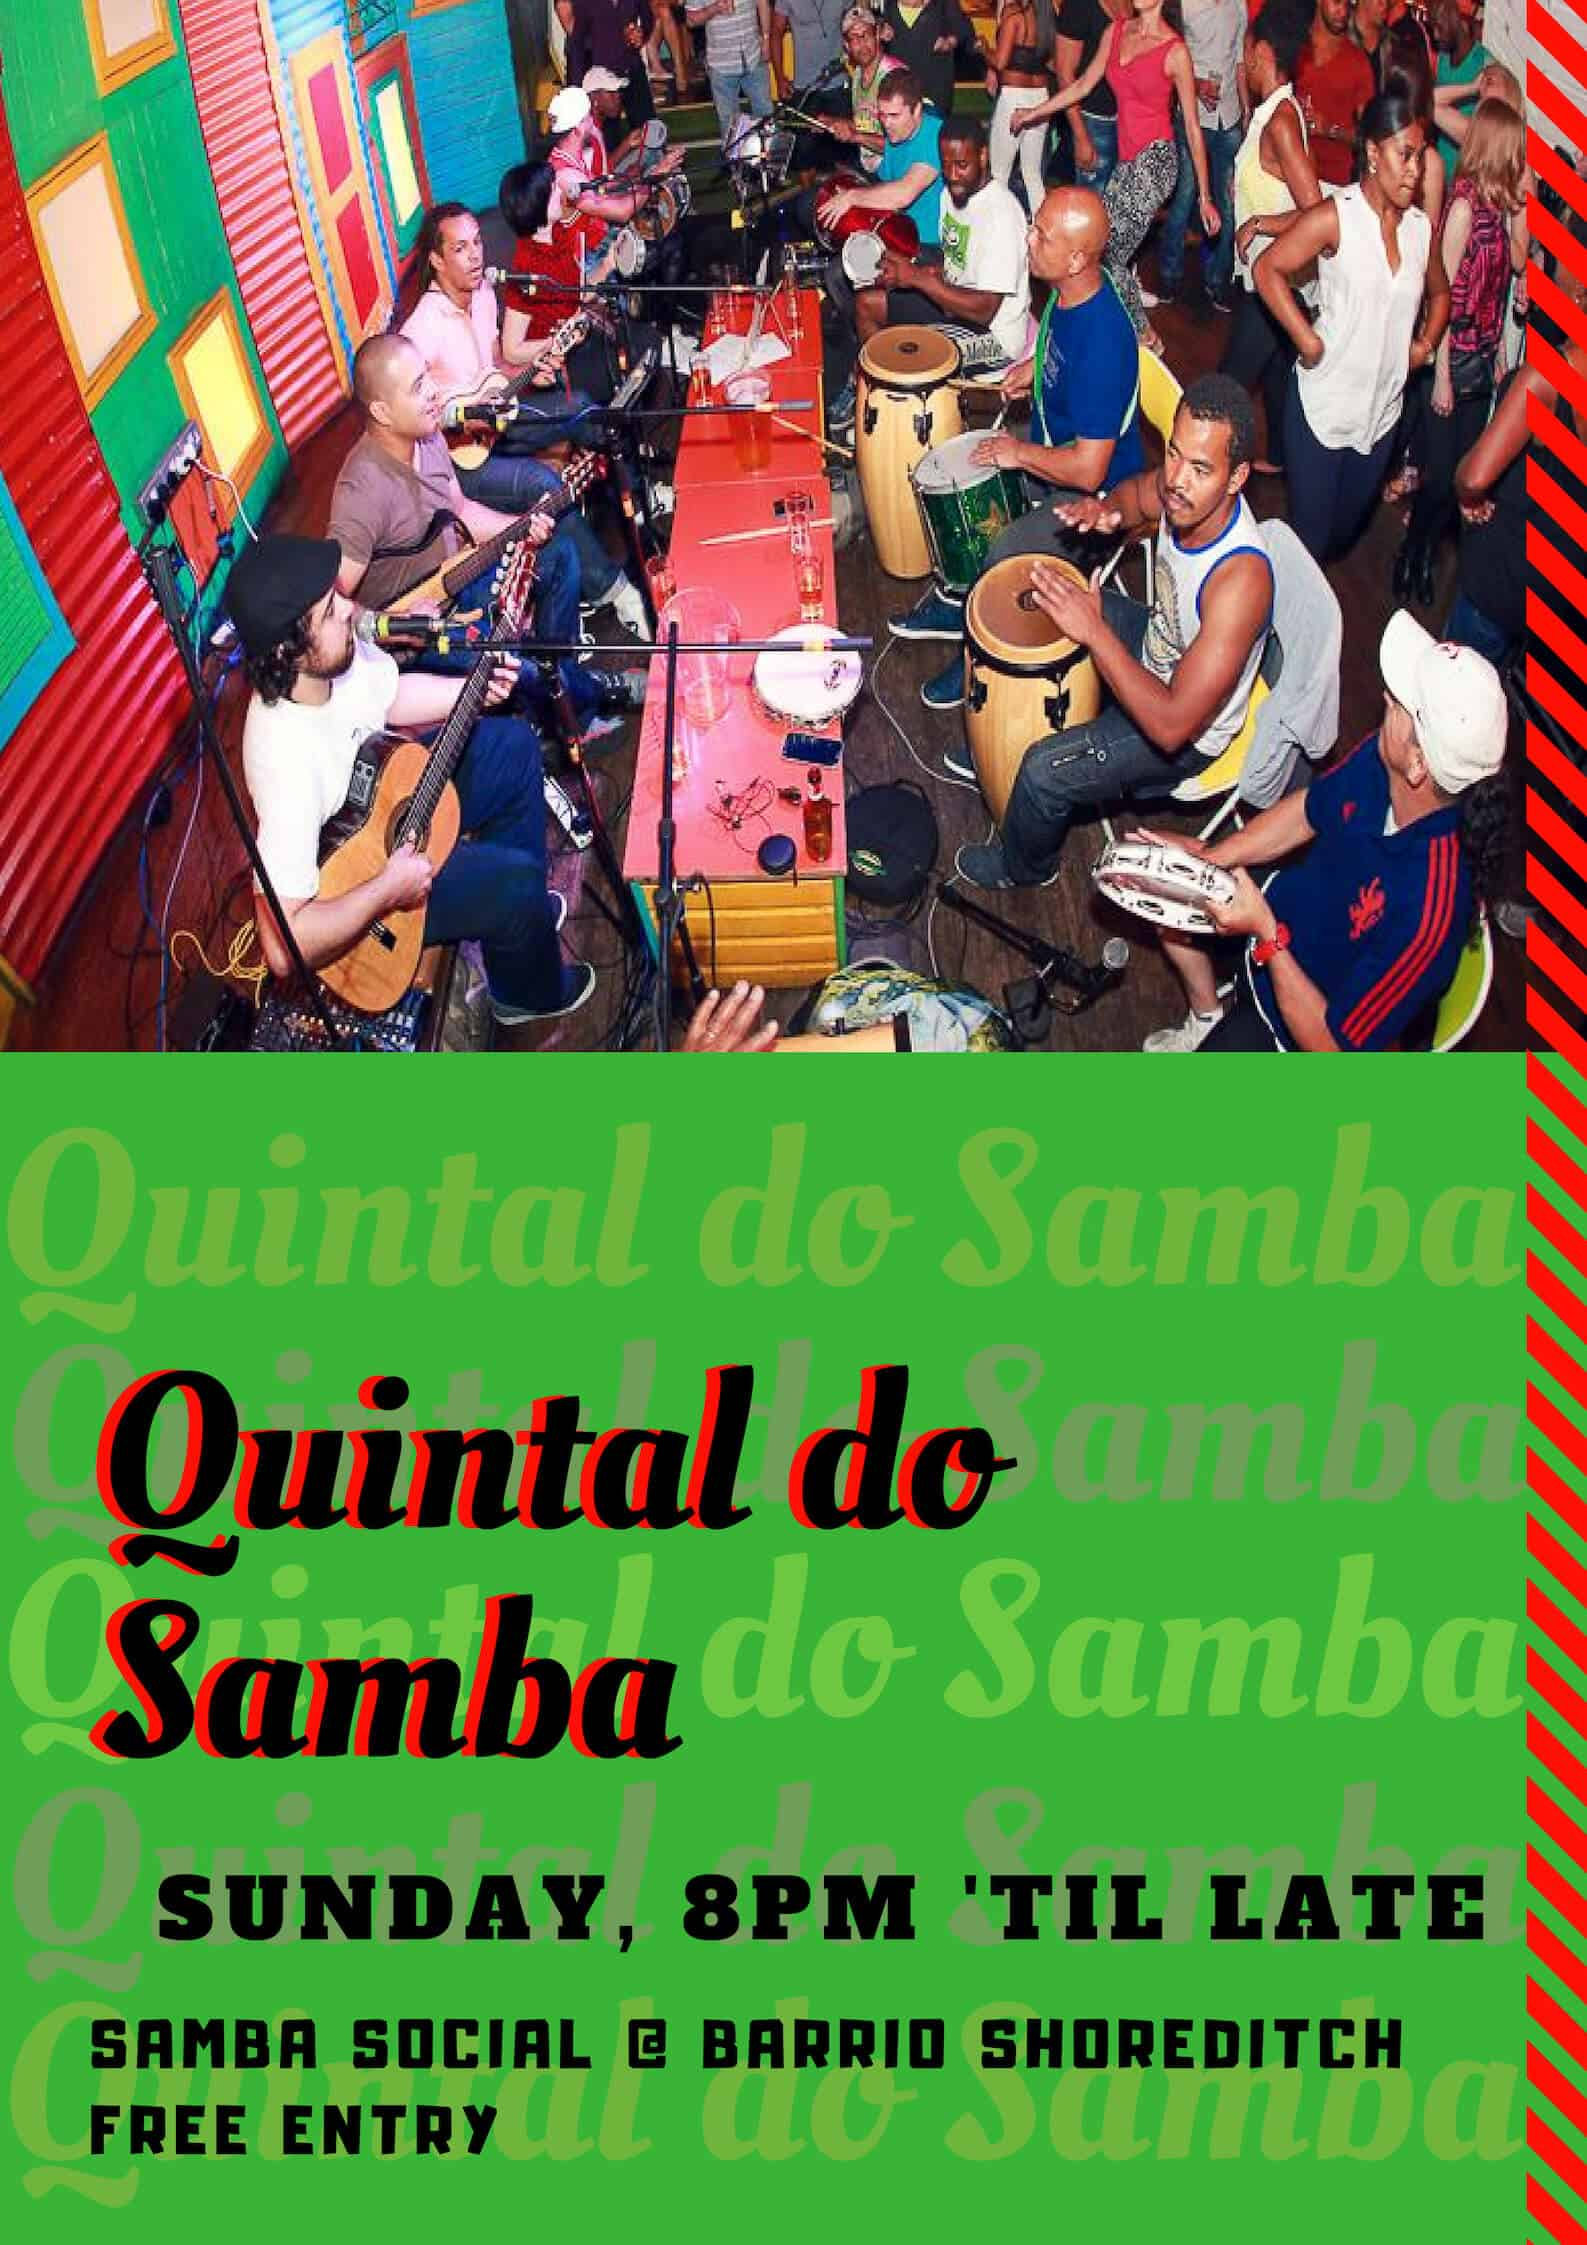 Quintal do Samba - Live Samba Band - Monday Social